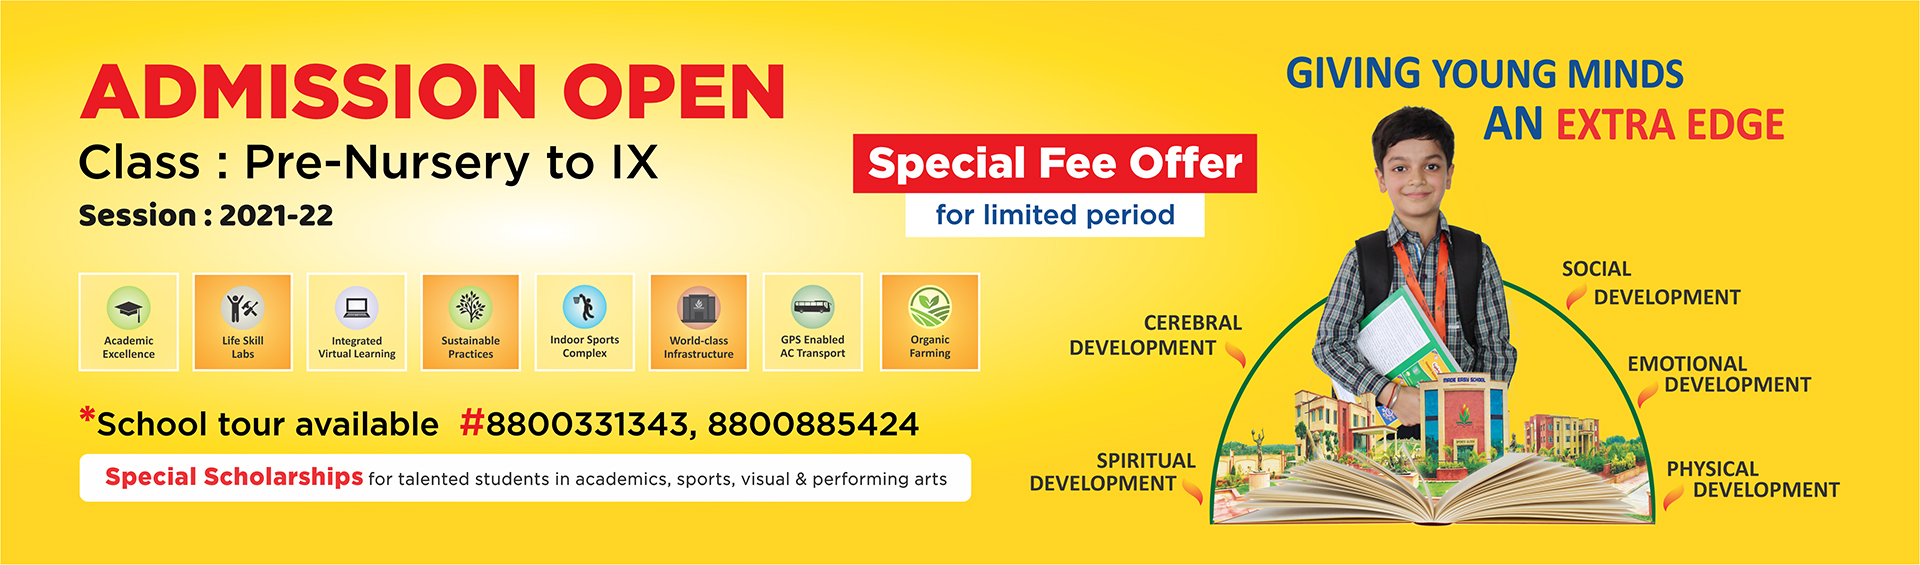 MADE EASY SCHOOL Admission Open for Pre-Nursery to IX